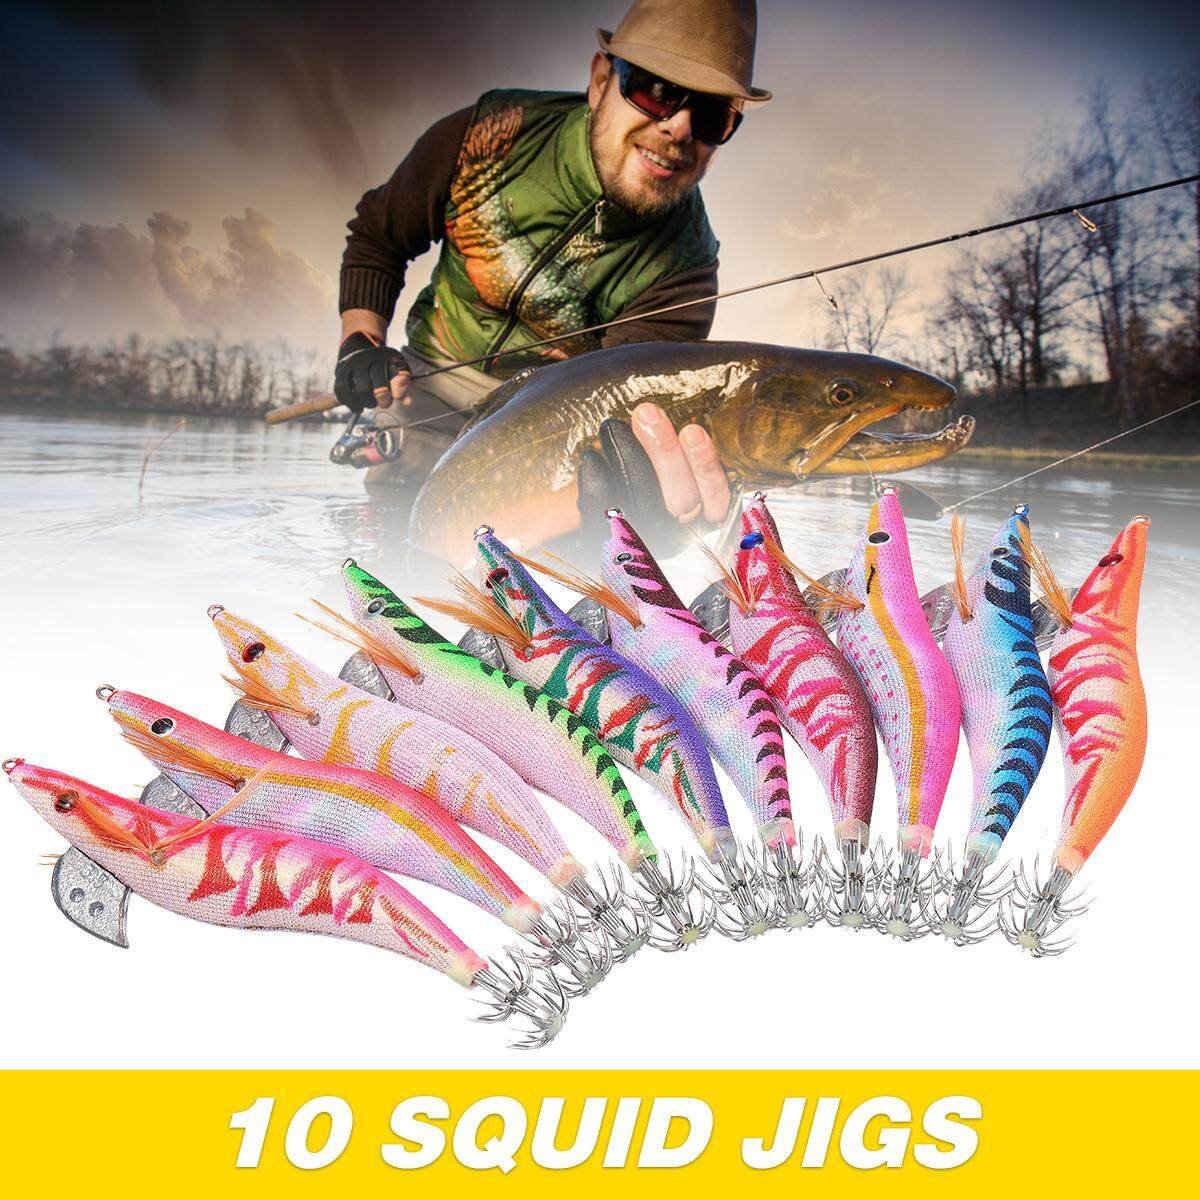 【free Shipping + Super Deal + Limited Offer】10 Squid Jigs Japanese Clothed Squid Lure Jig 3.5 My 10 Best Jigs For Squid New By Moonbeam.